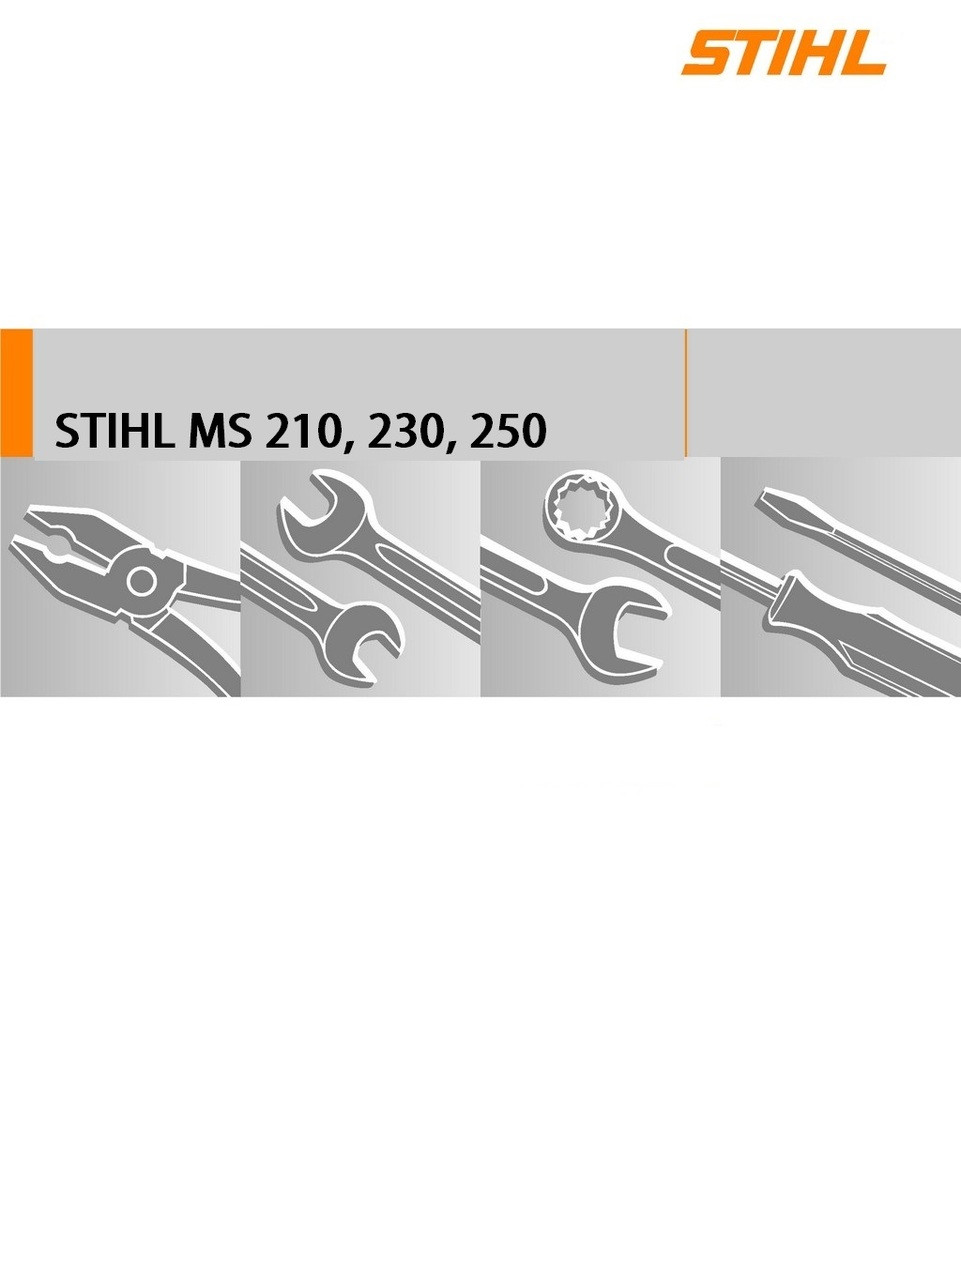 Download Service Manual For Stihl MS210, 230, 250